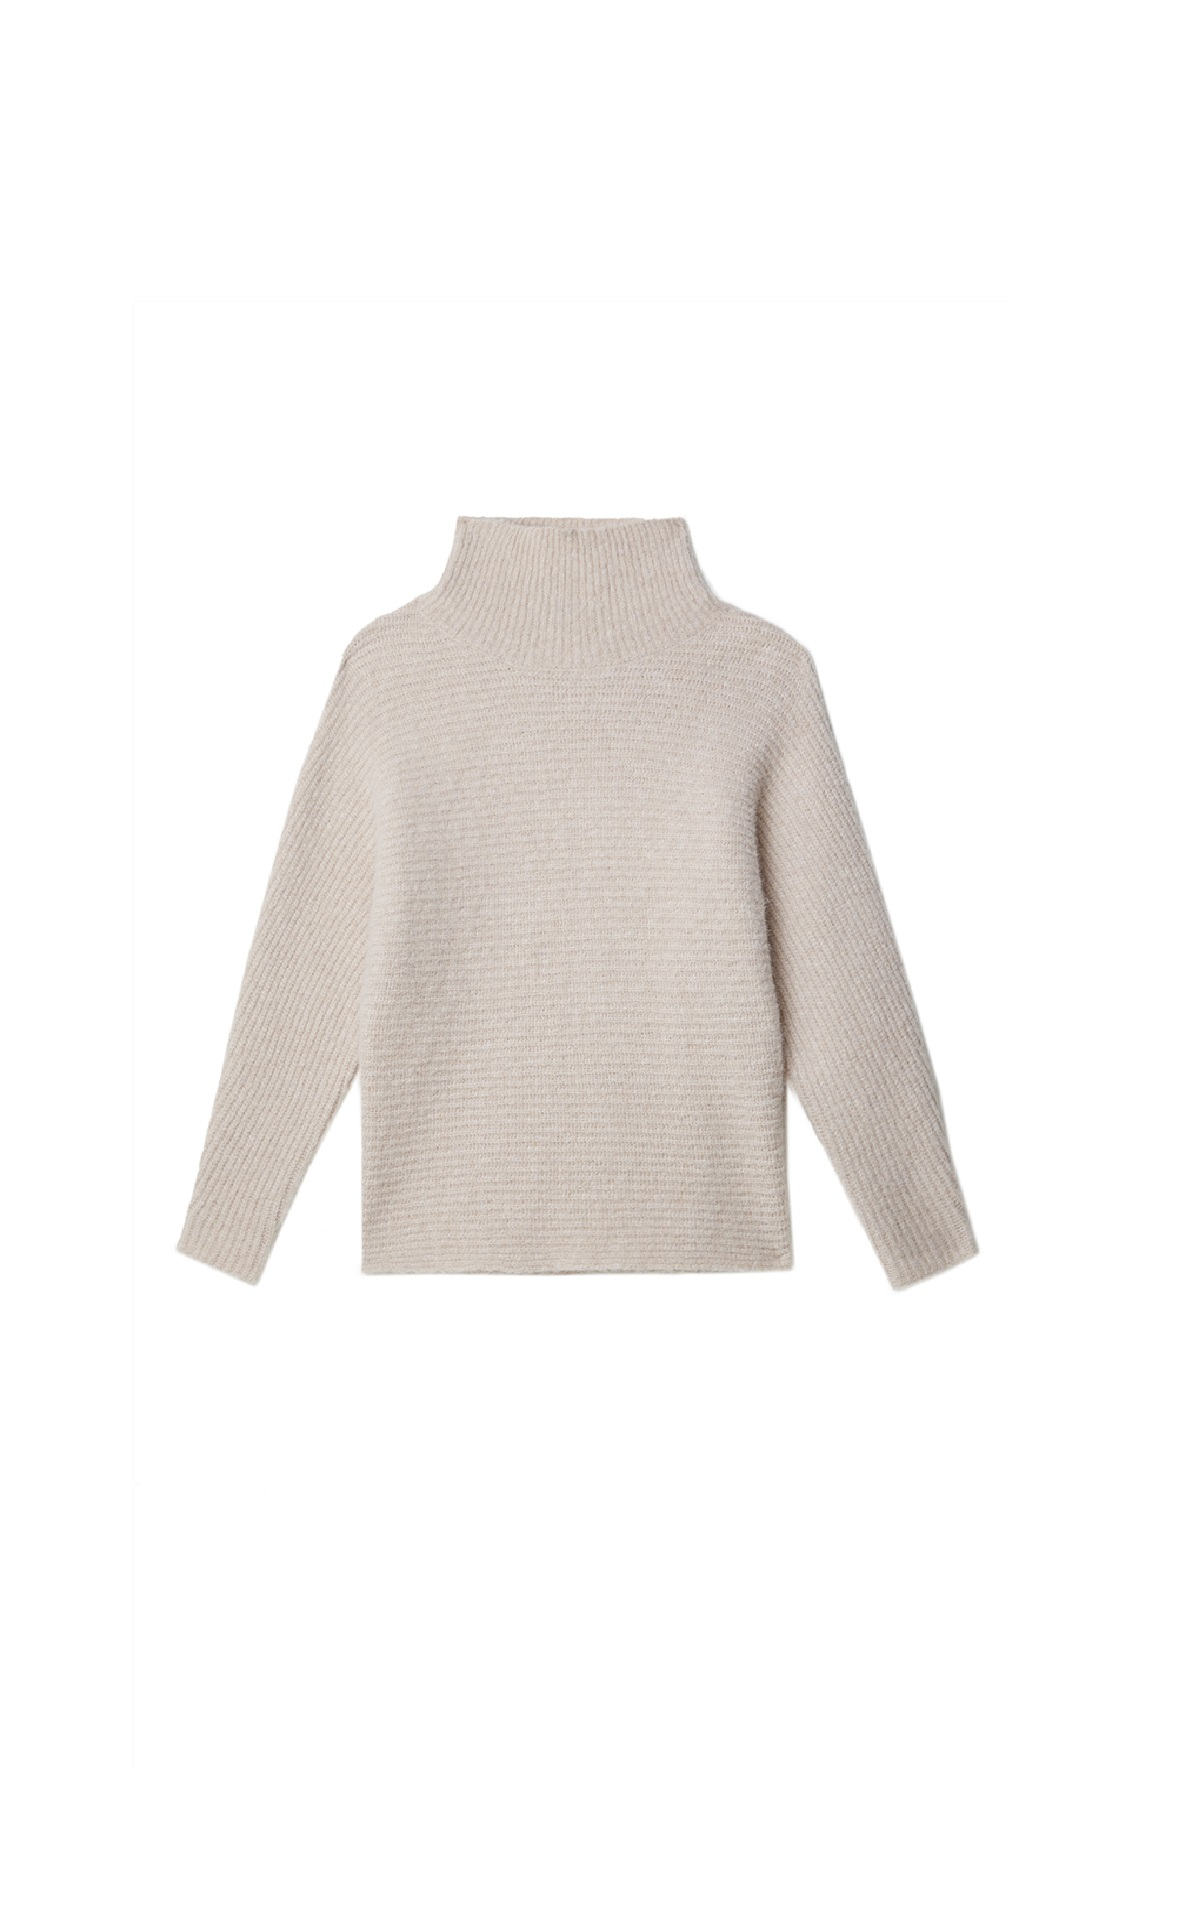 Beige turtle neck sweater Adolfo Dominguez